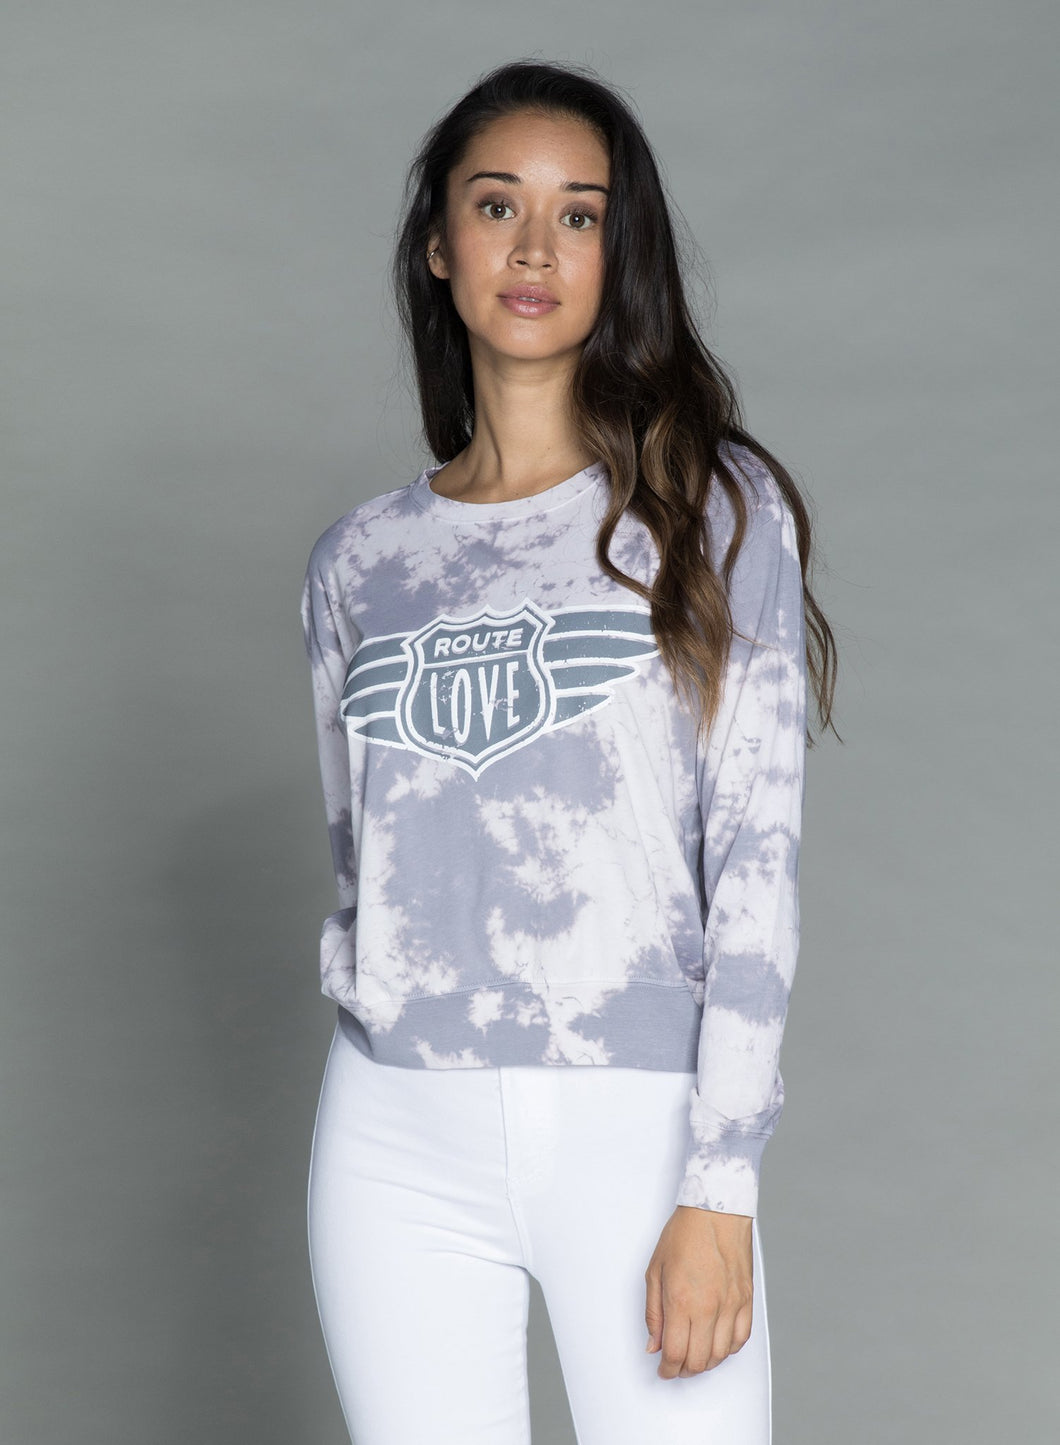 ROUTE LOVE — Wide long Sleeve T-Shirt